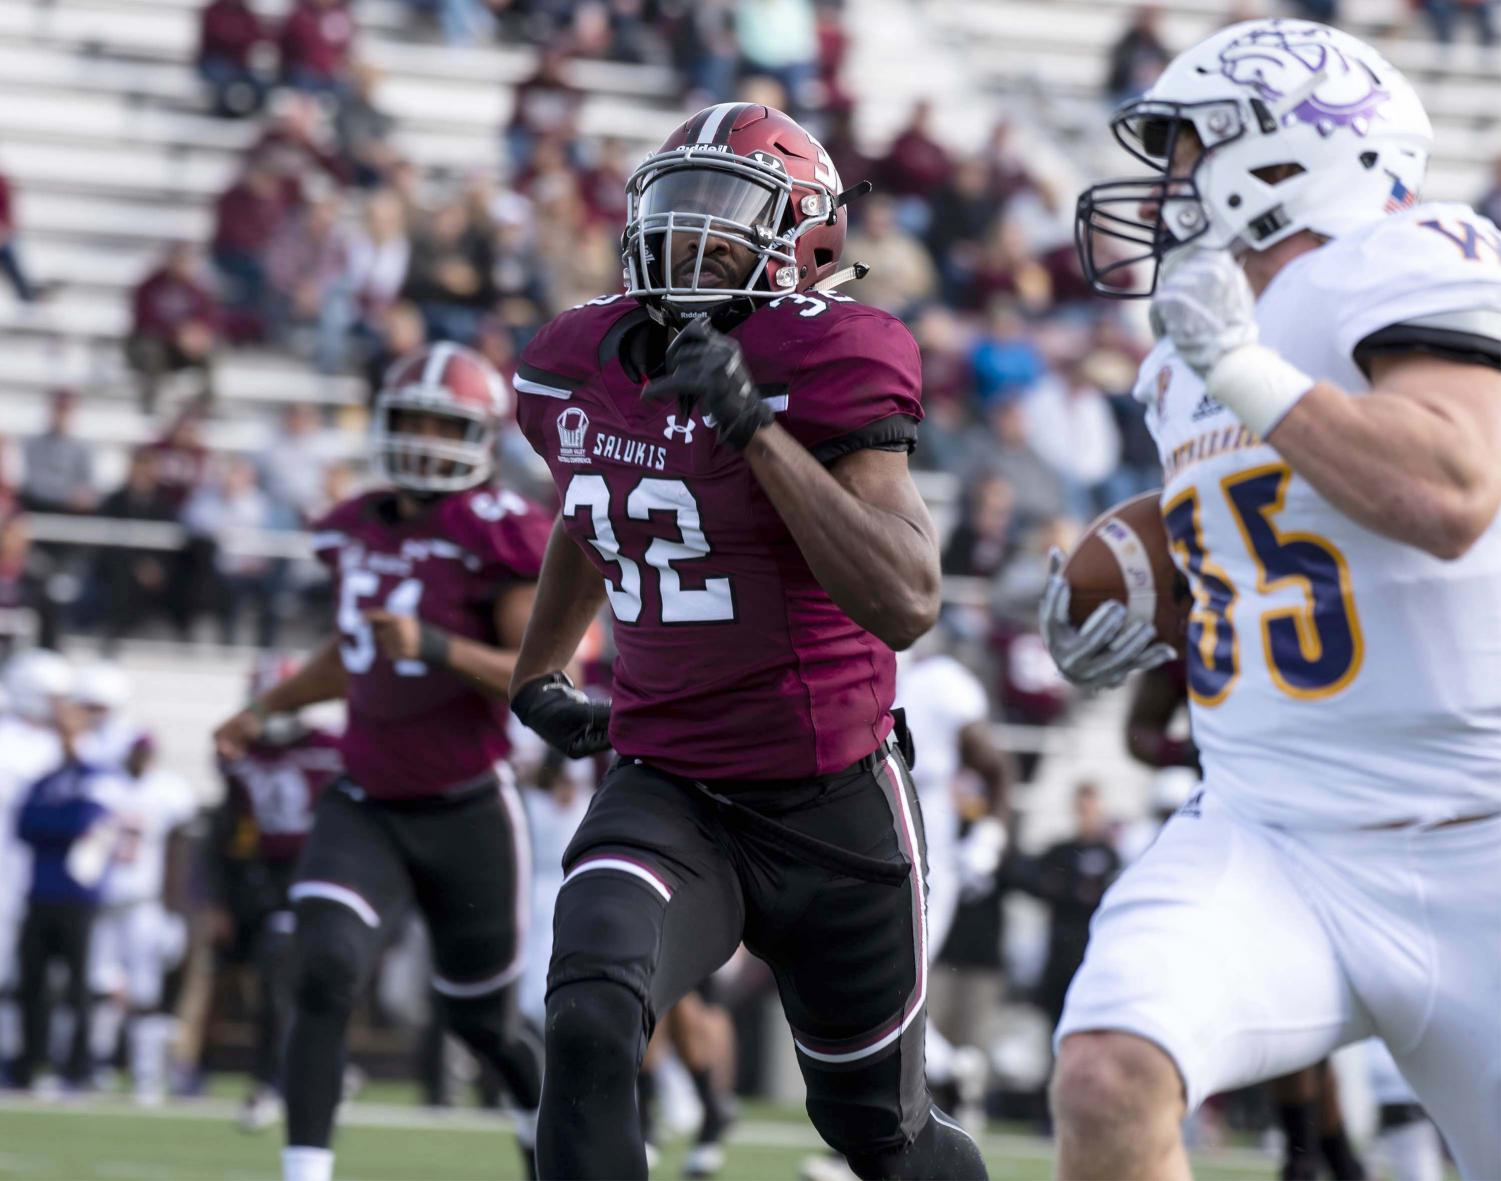 Senior safety, Joe Patterson, of Chicago, runs along side Leatherneck's running back, Larry Harleston, of Racine, Wis.,Saturday, Nov. 3, 2018, during the Salukis' 34-31 loss against Western Illinois University at the Saluki Stadium. (Allie Tiller | @allietiller_de)